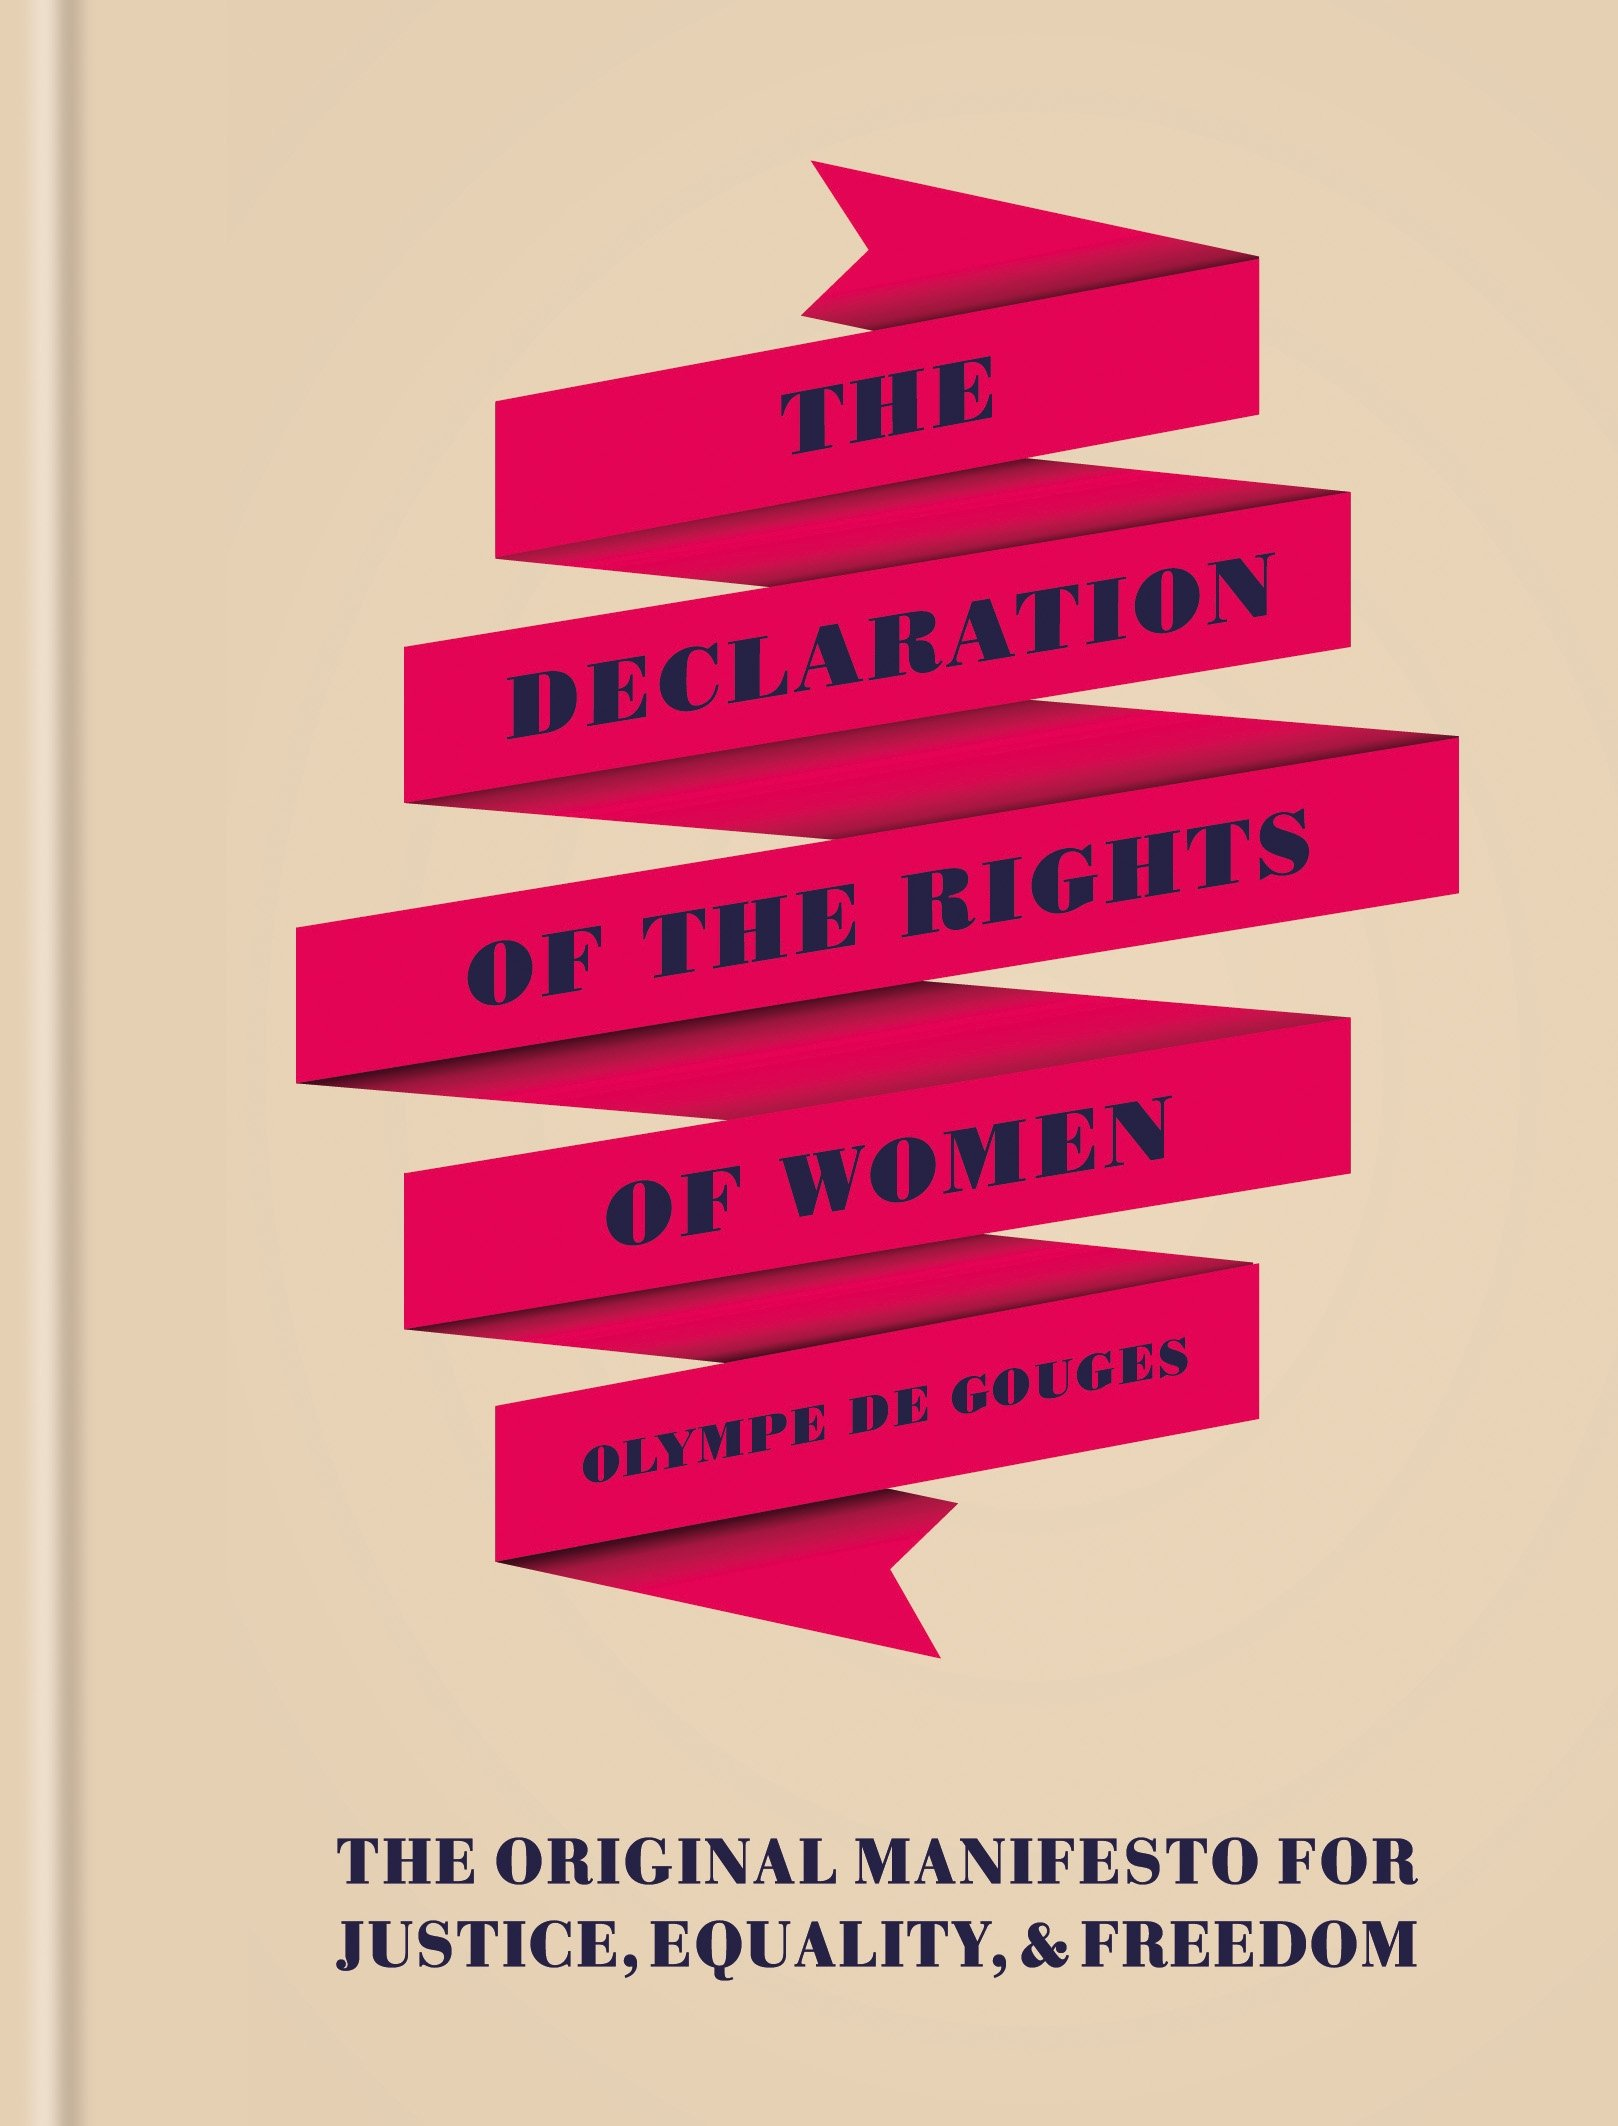 The Declaration of the Rights of Women: Olympe de Gouges